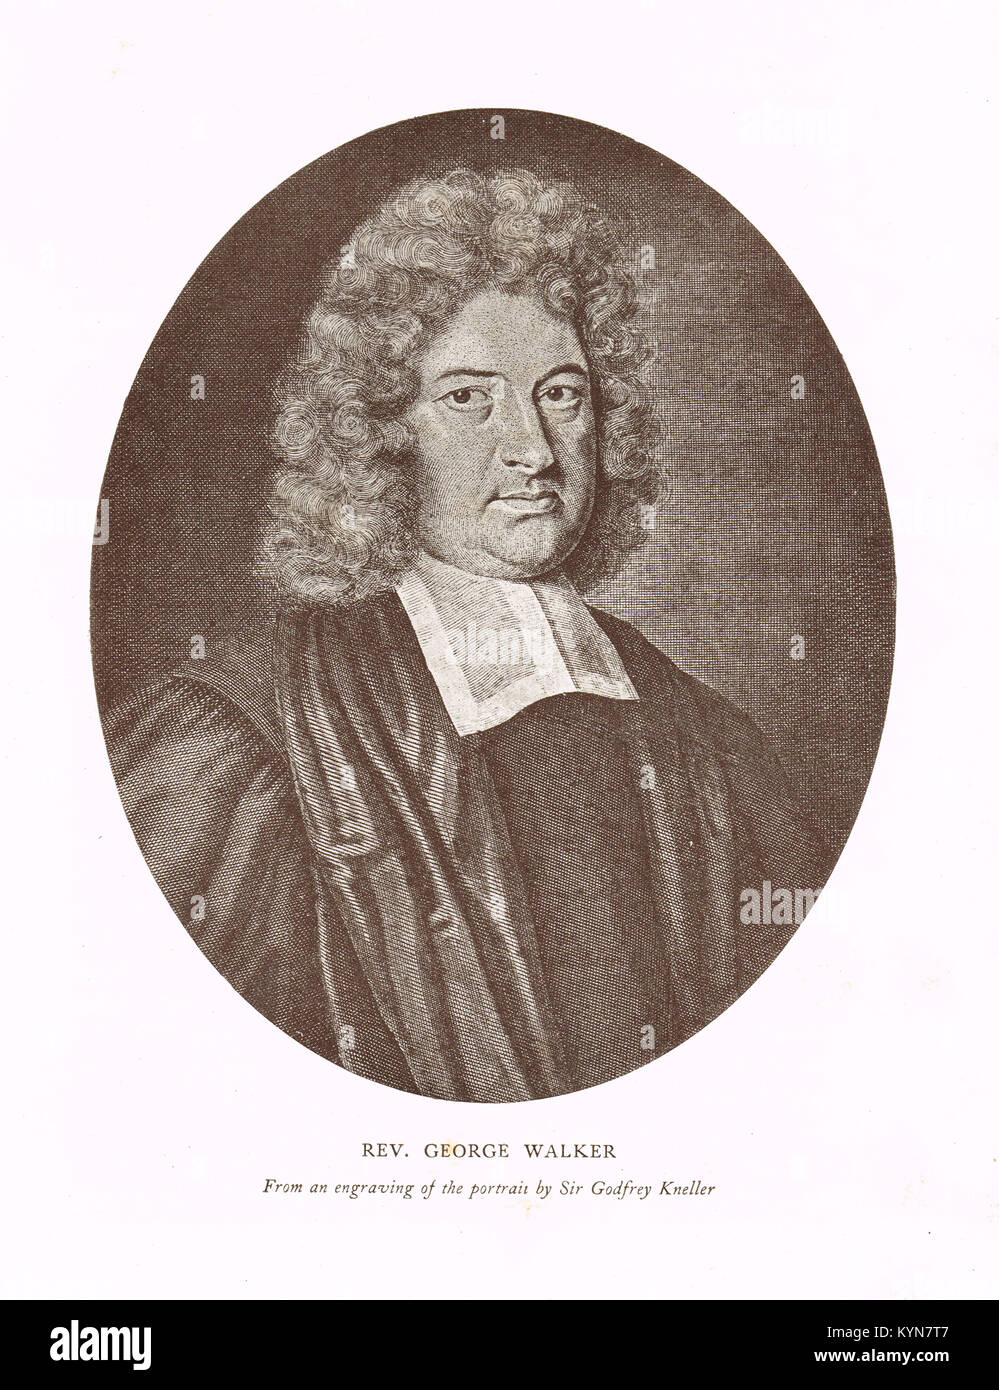 Rev George Walker,  joint Governor of Derry, Siege of Derry 1689 - Stock Image